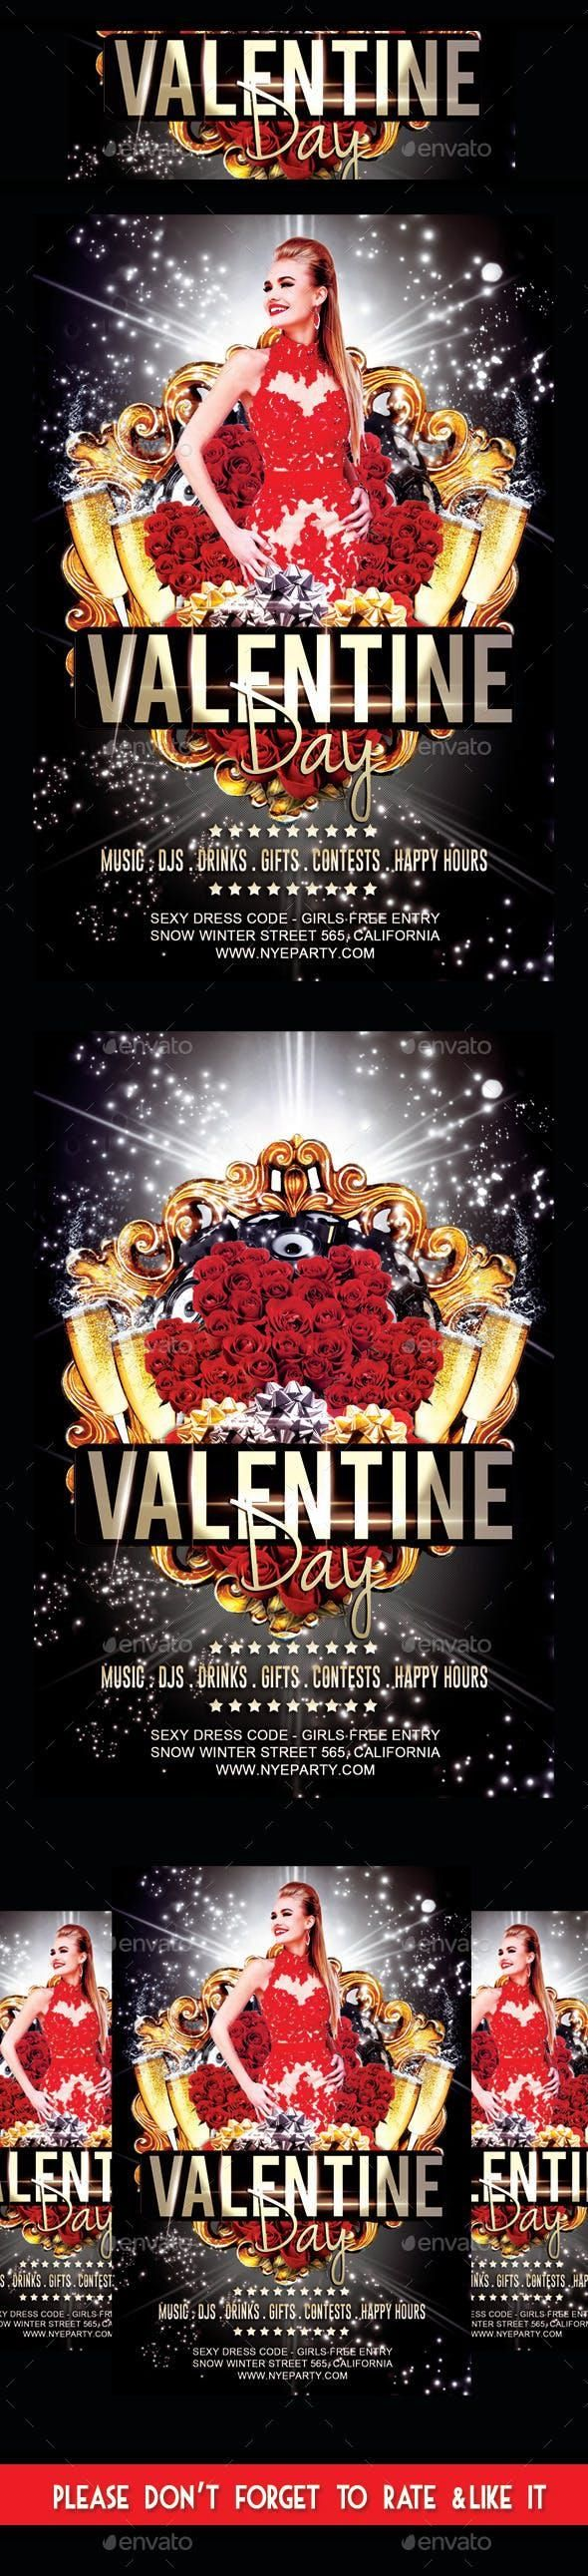 Valentine Day Party Flyer for $8 #FlyerTemplates #event #graphics #holiday #Holi…